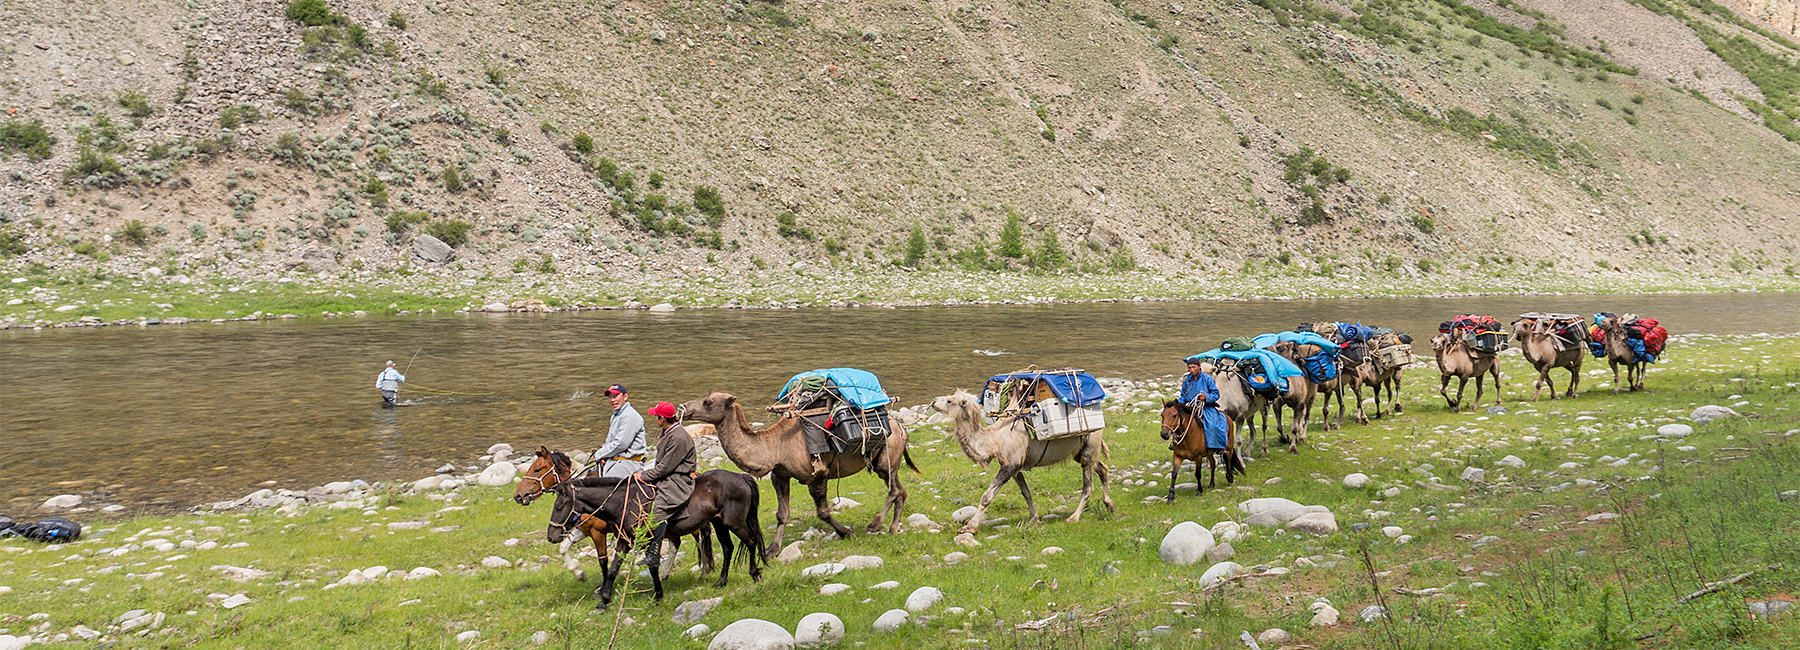 Essential Gear for Fly Fishing Mongolia